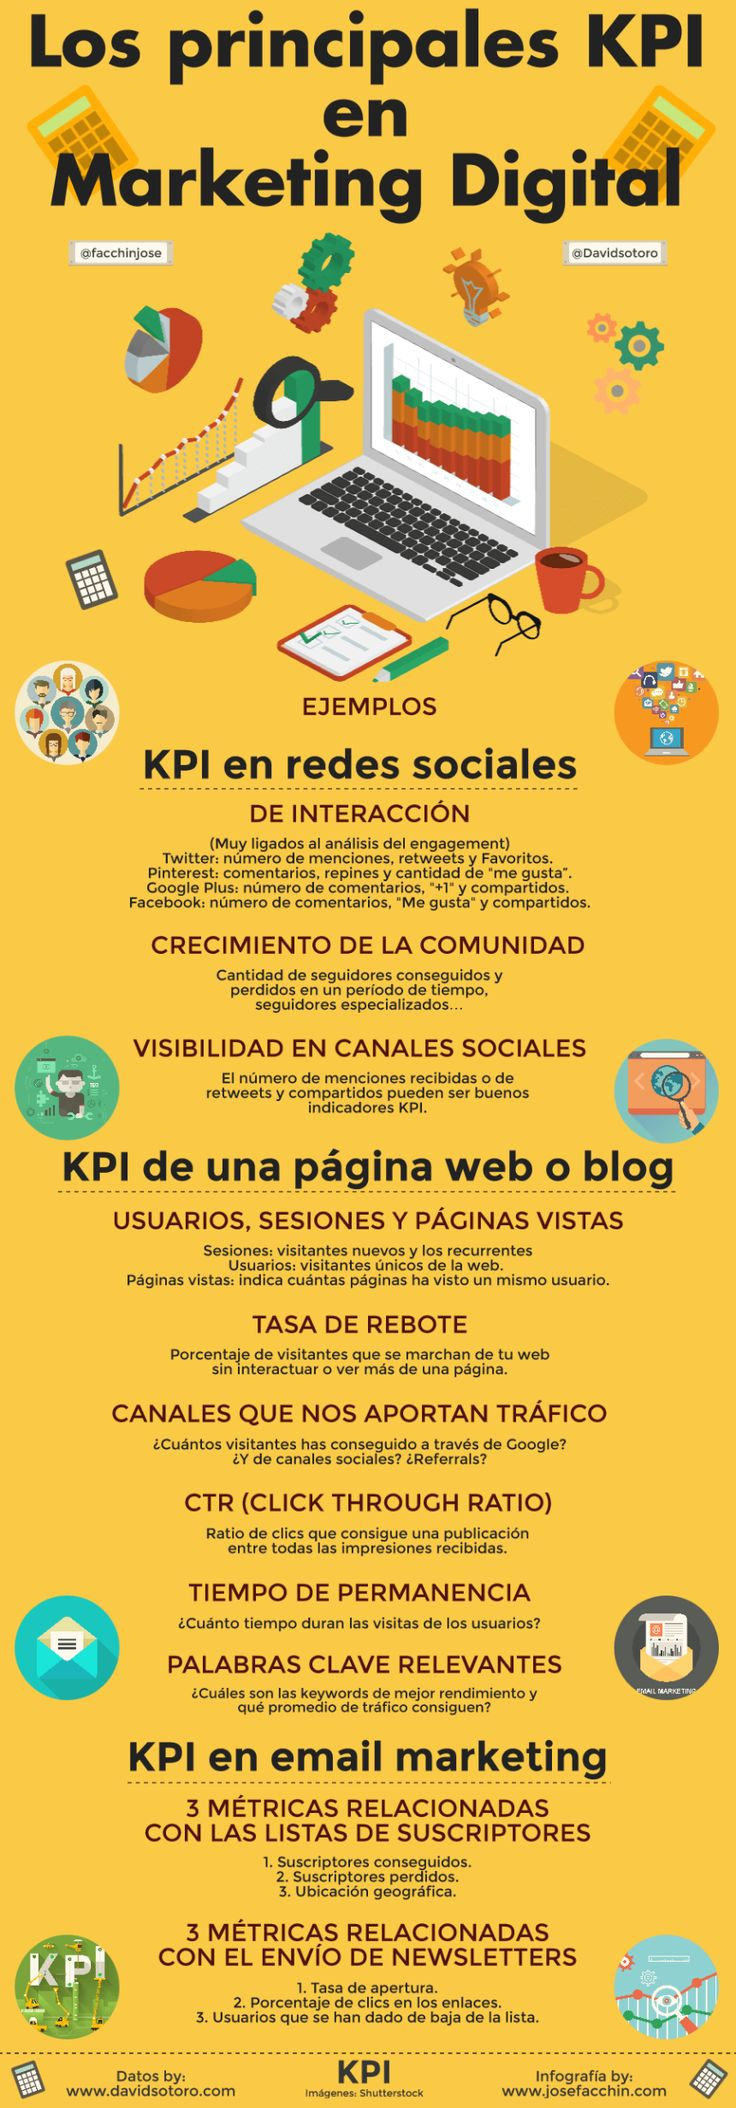 Los principales KPI del marketing digital